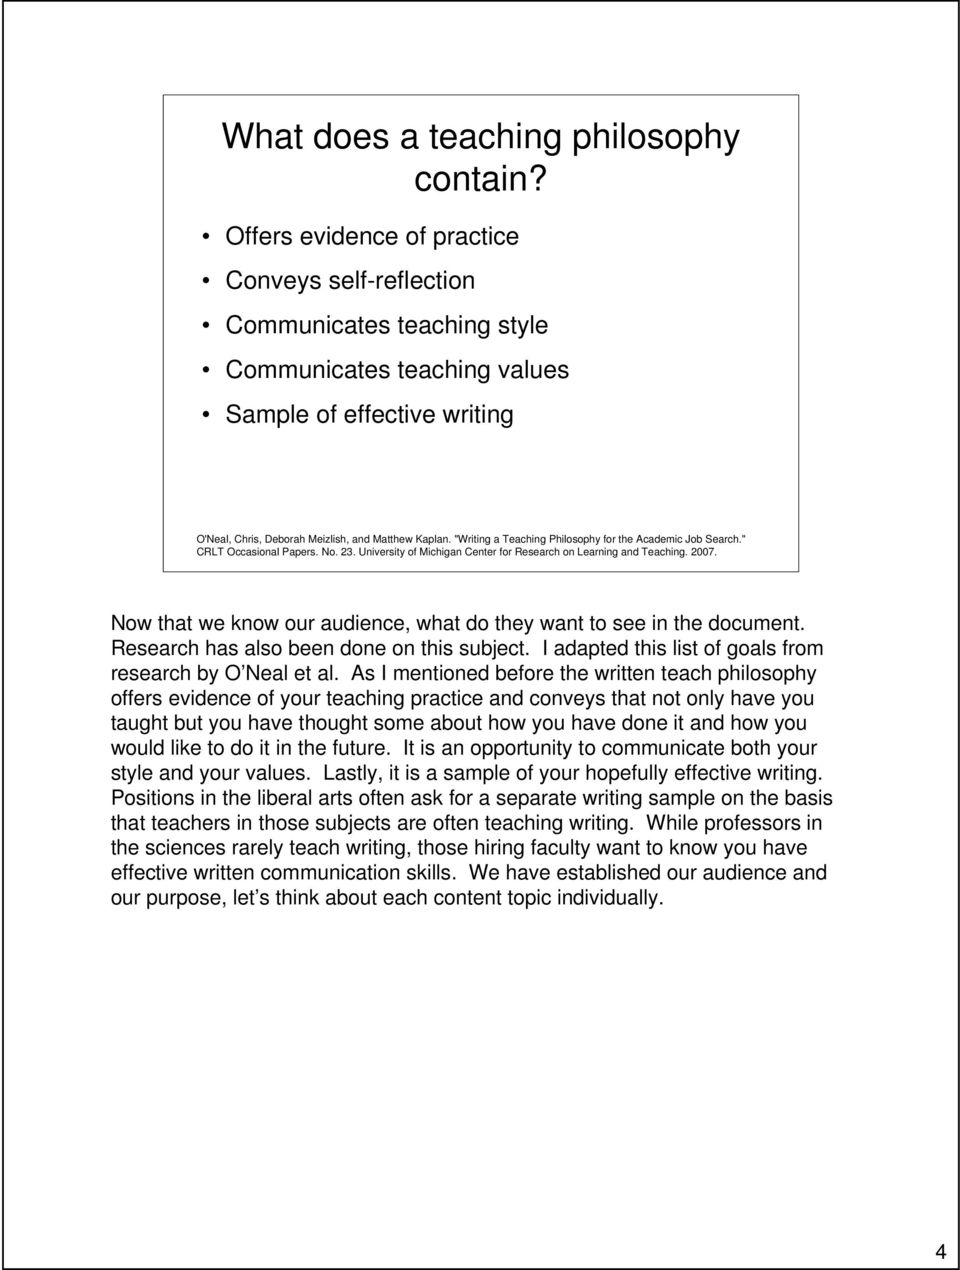 """Writing a Teaching Philosophy for the Academic Job Search."" CRLT Occasional Papers. No. 23. University of Michigan Center for Research on Learning and Teaching. 2007."